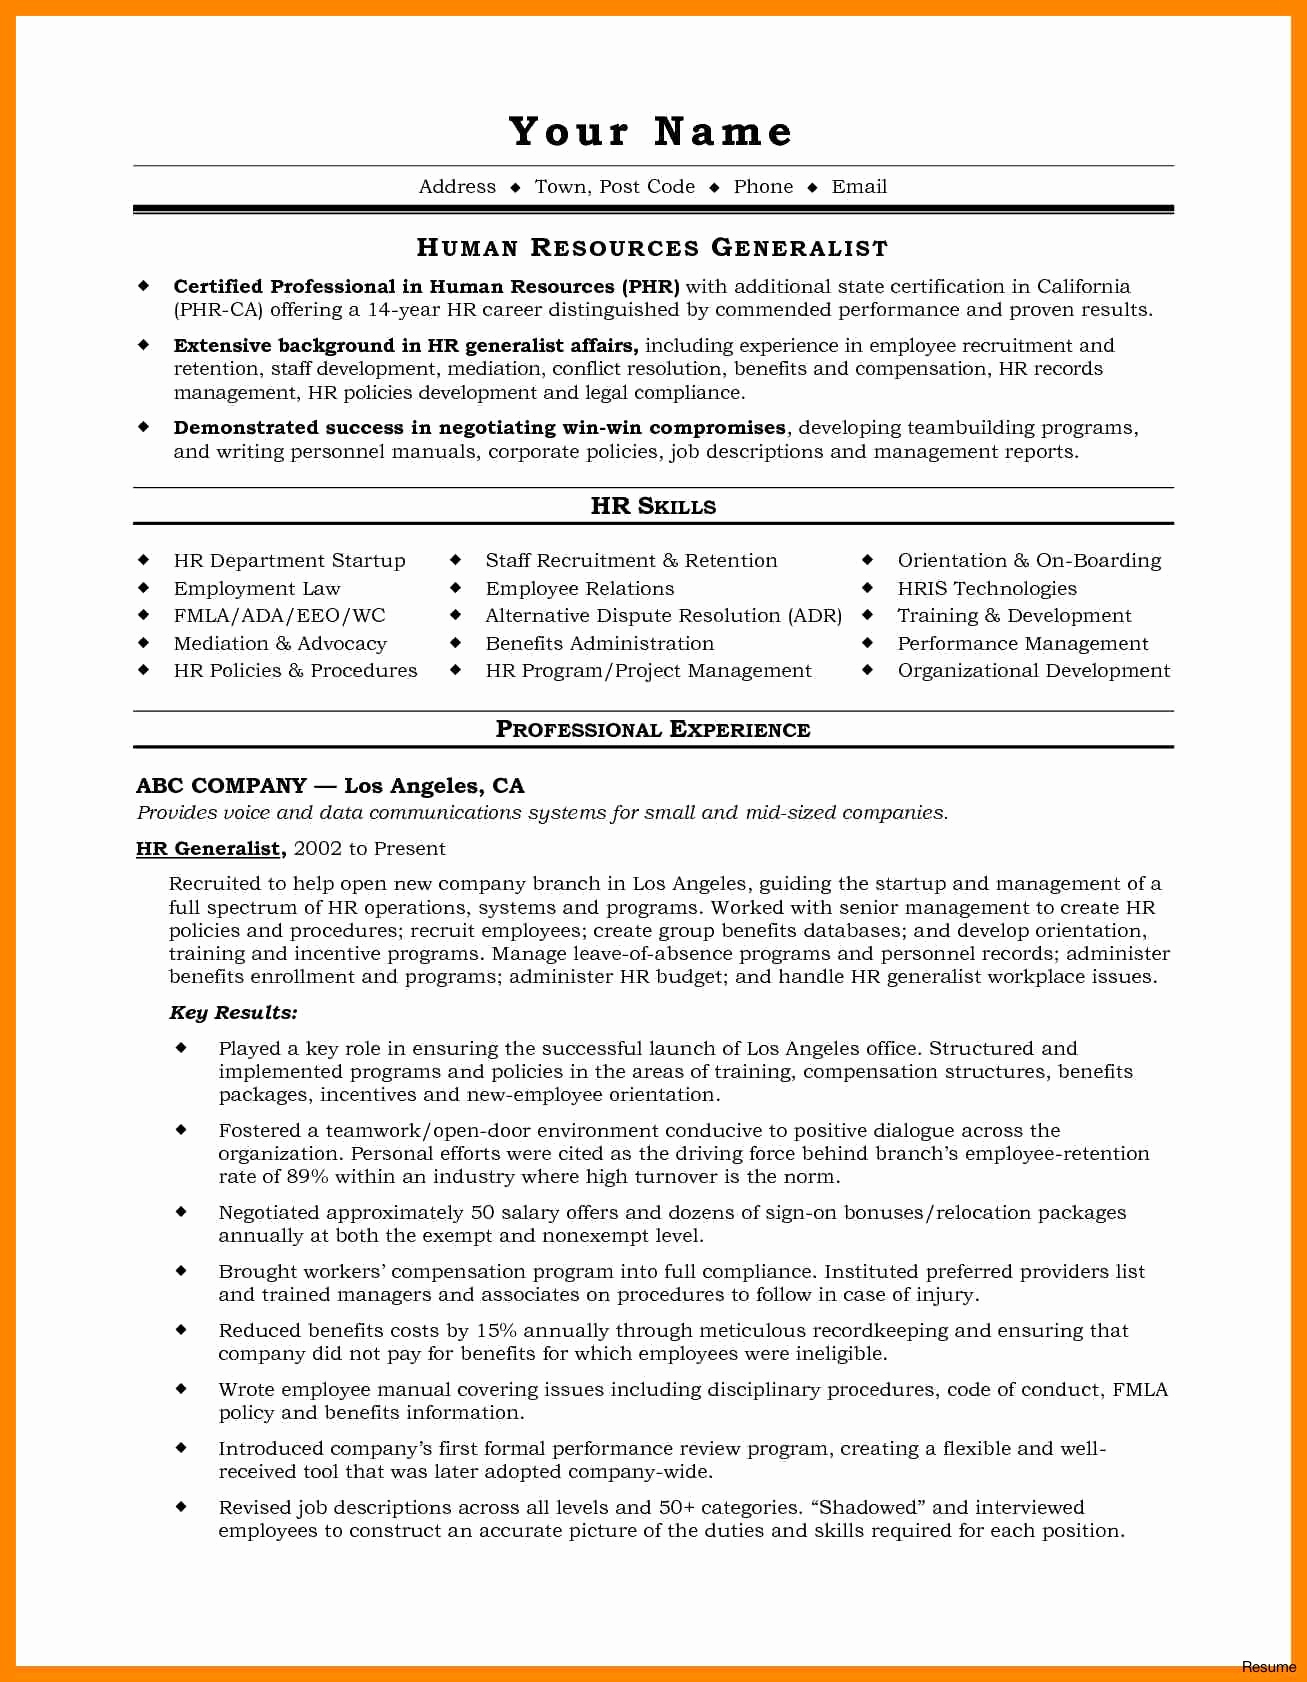 Compliance Letter Template - Senior Executive Cover Letter Examples Inspirational Hr Resume